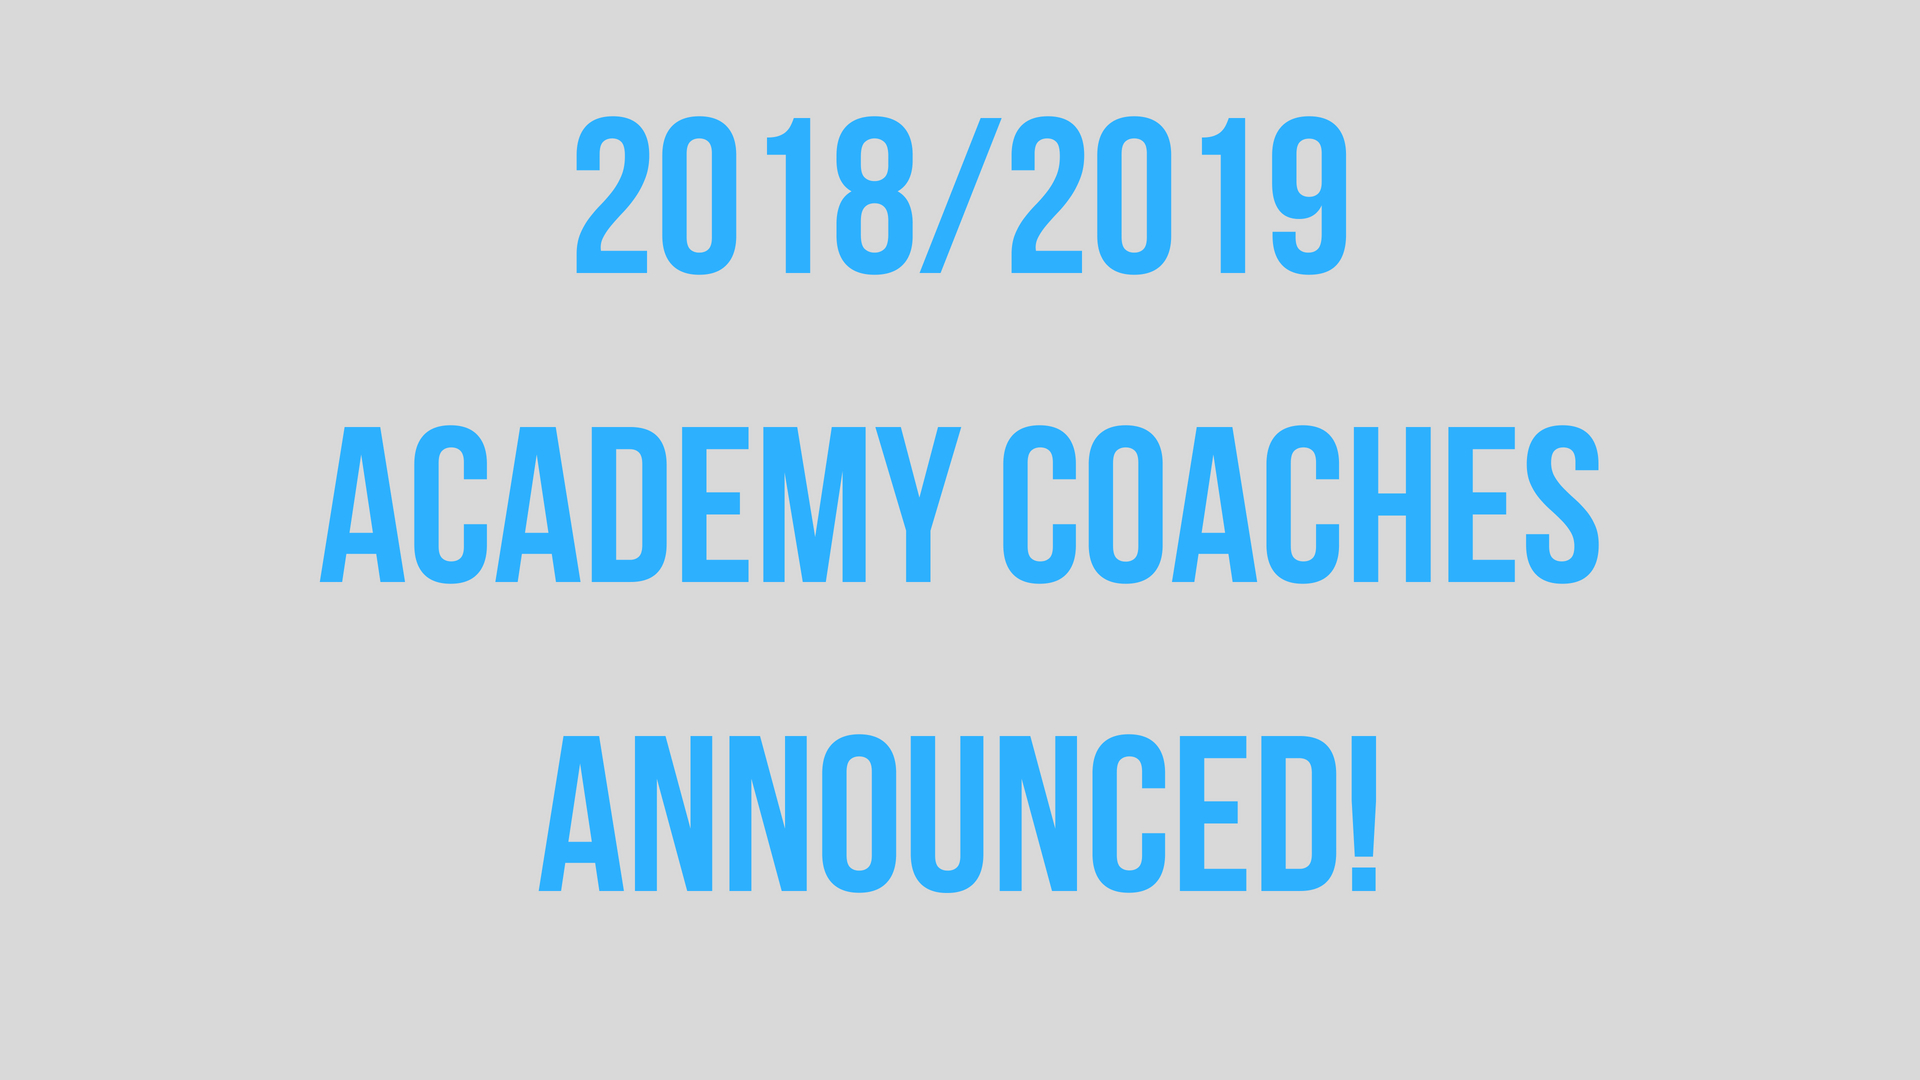 2018/2019 Academy Coaches Announced!